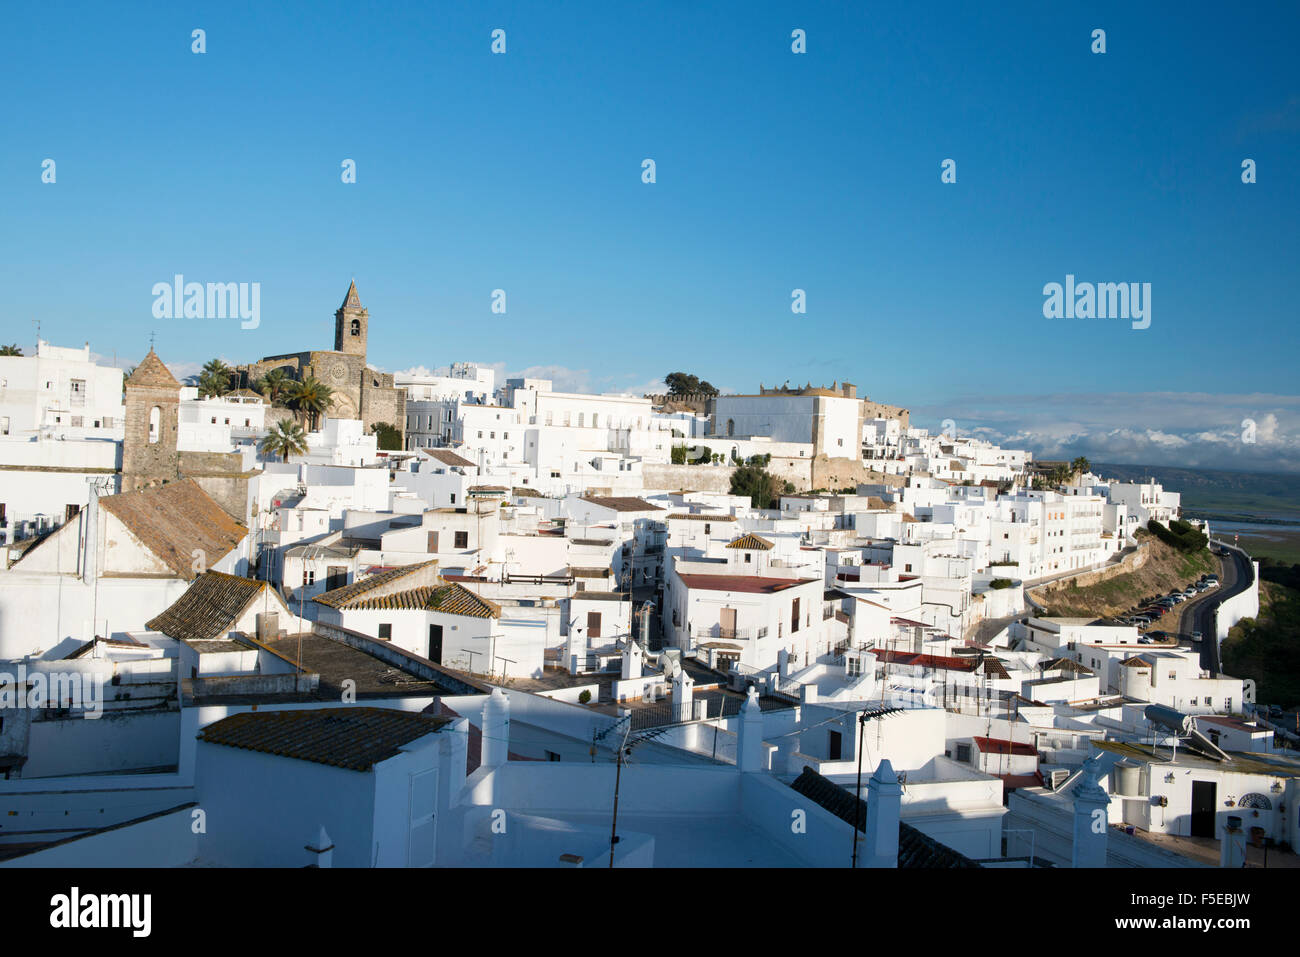 Rooftop views of the whitewashed village (Pueblos blanca) of Vejer de la Frontera, Cadiz province, Andalucia, Spain, - Stock Image